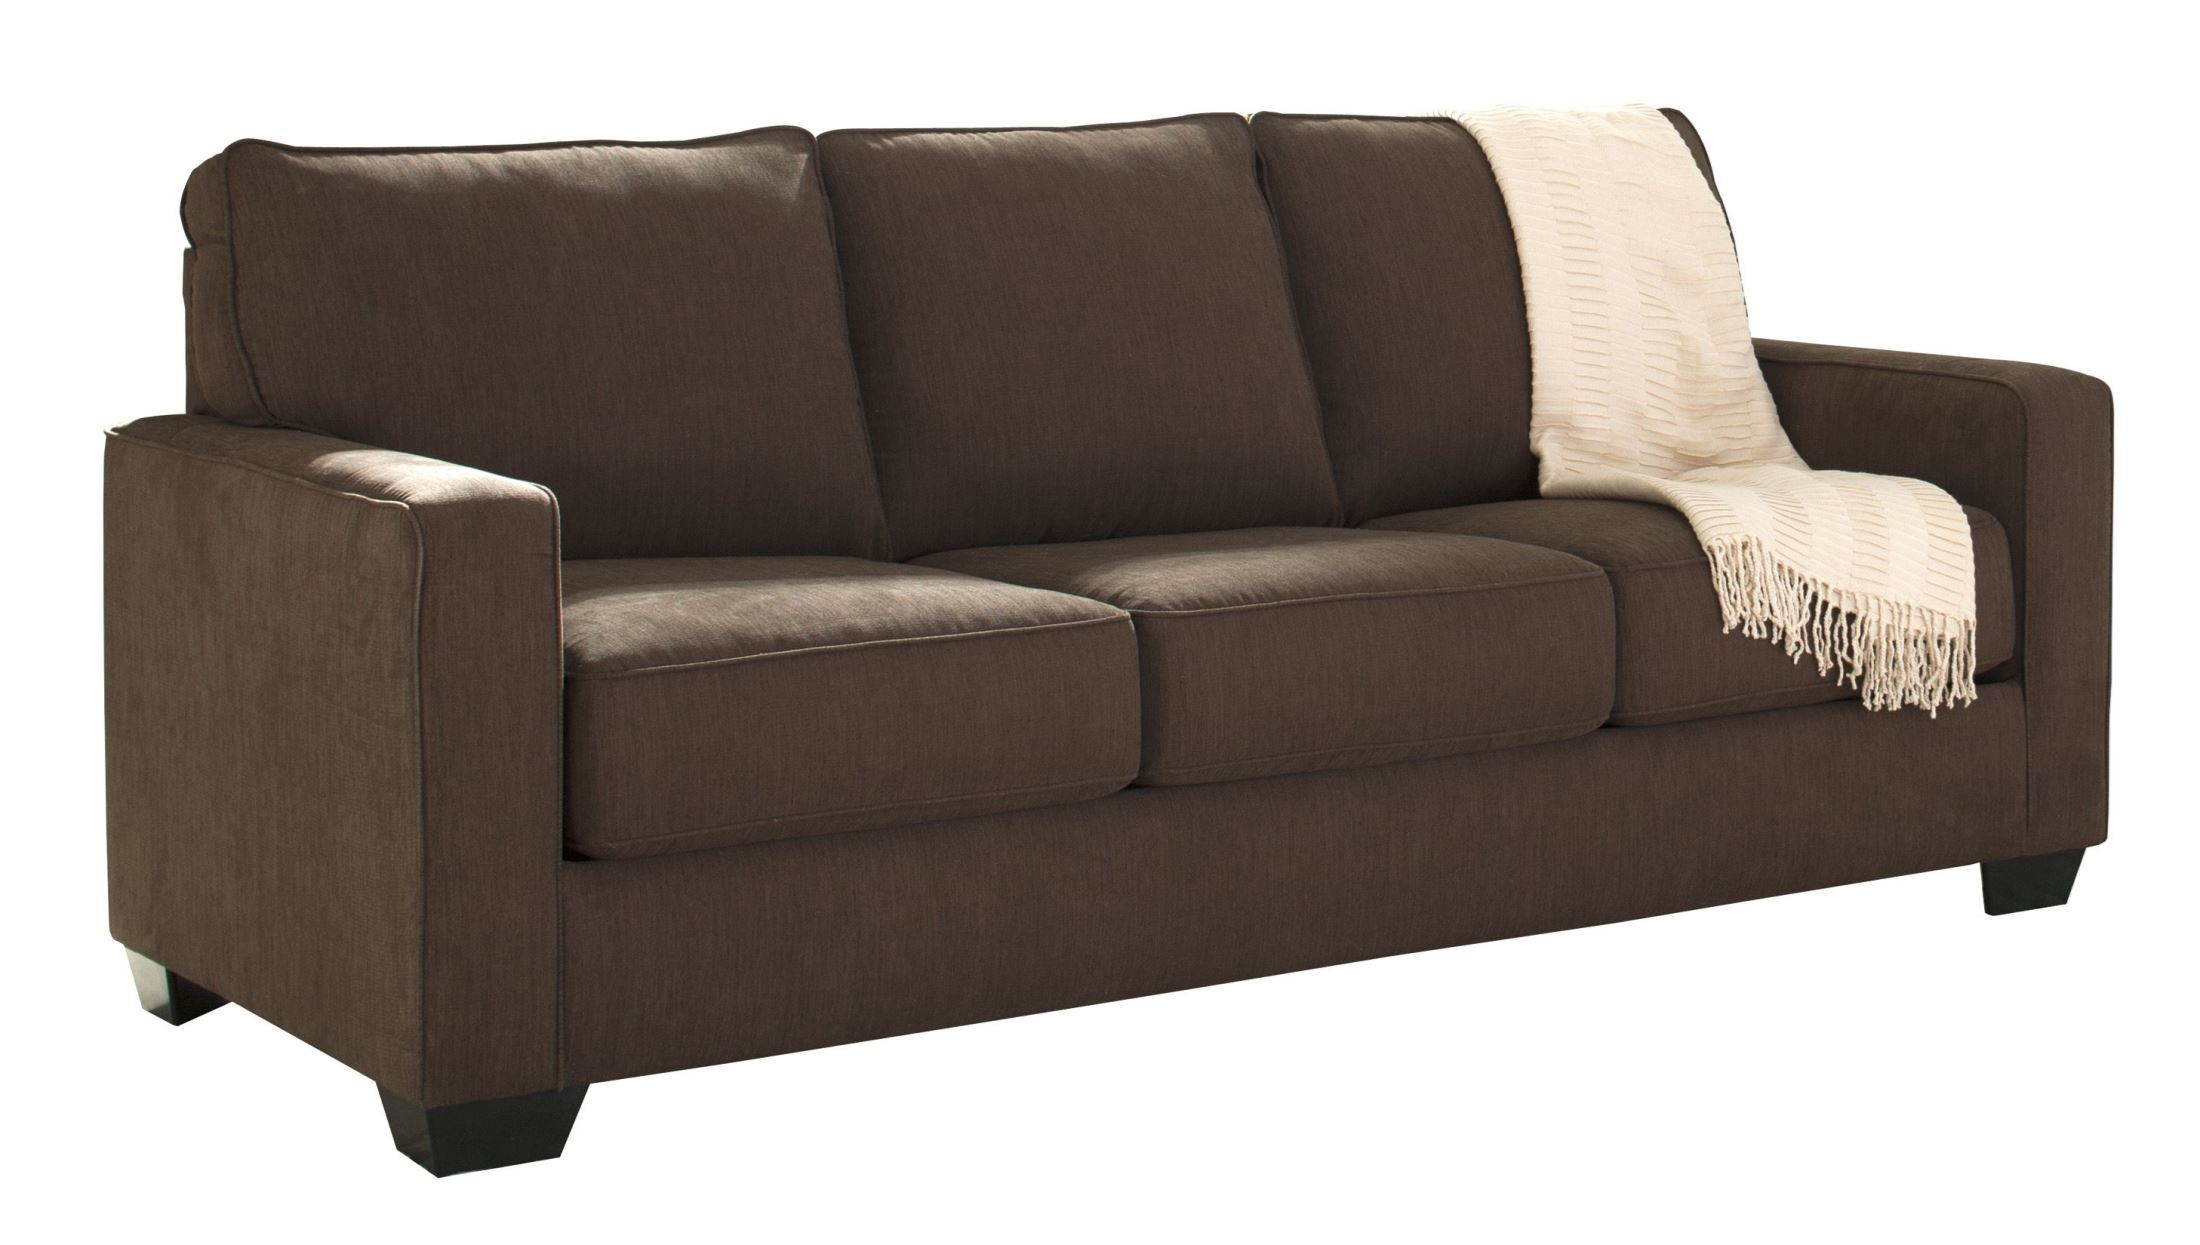 Zeb Espresso Queen Sofa Sleeper 3590339 Ashley : 35903 39 sw from colemanfurniture.com size 2200 x 1245 jpeg 254kB